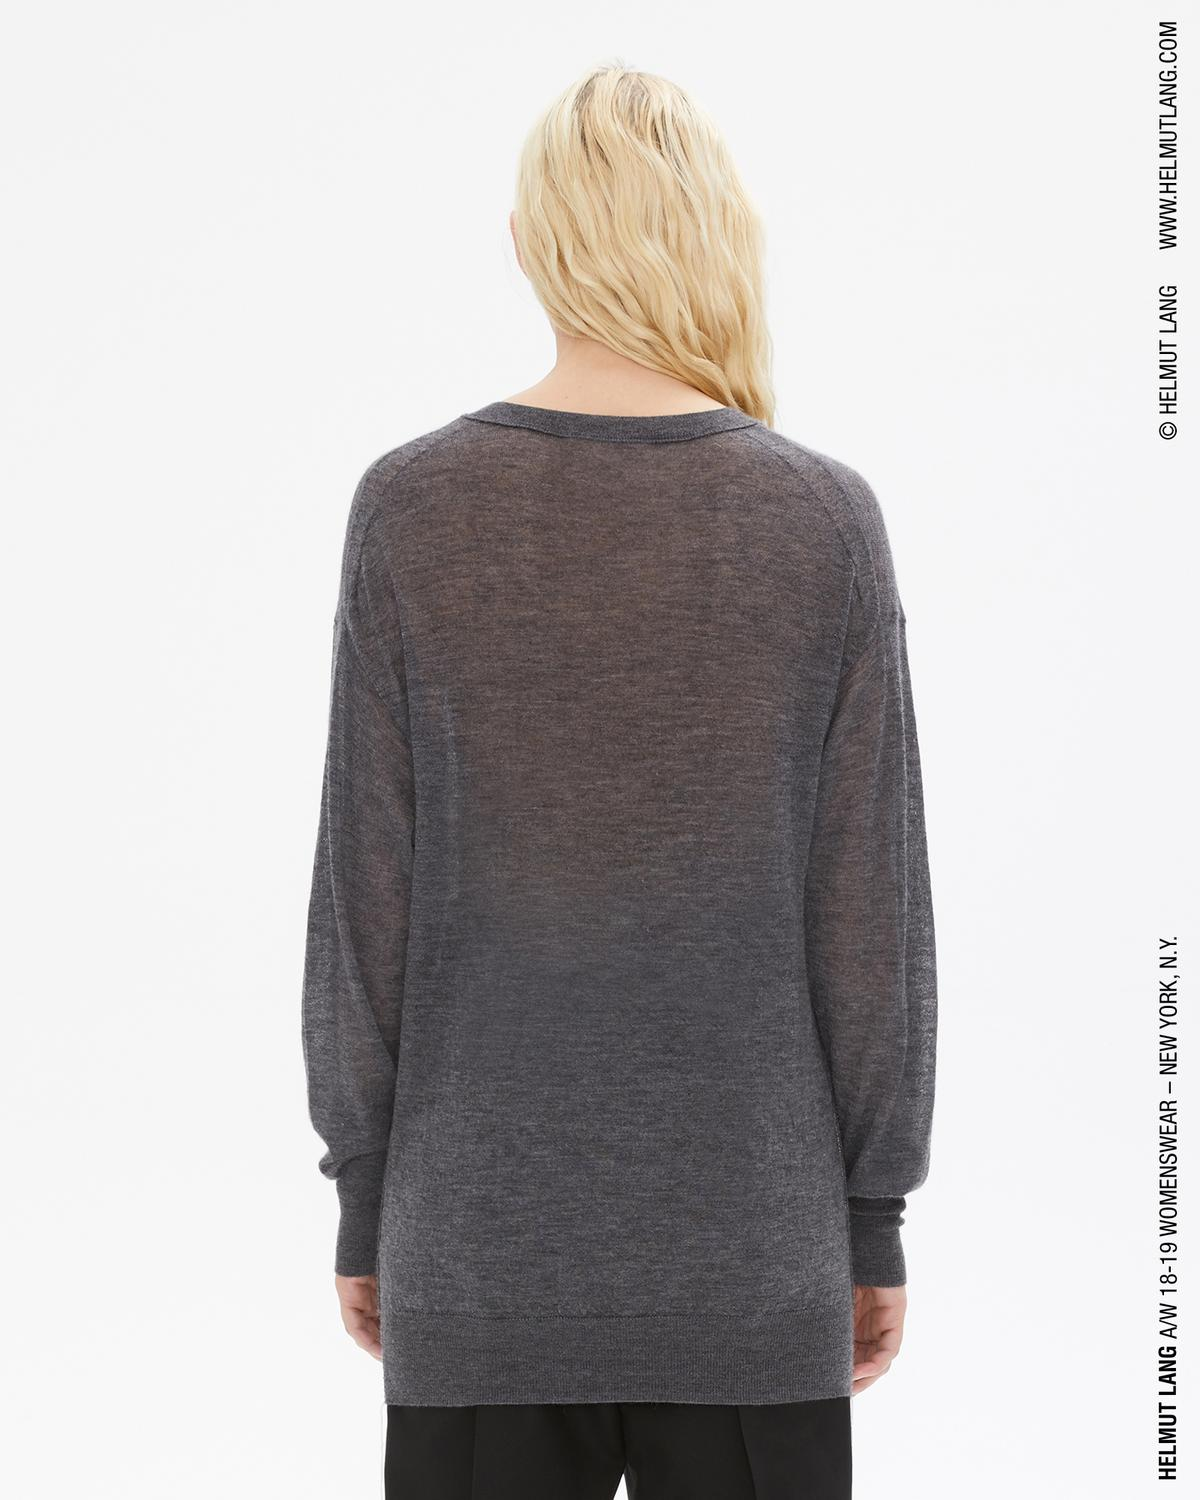 LONG SLEEVE VNECK